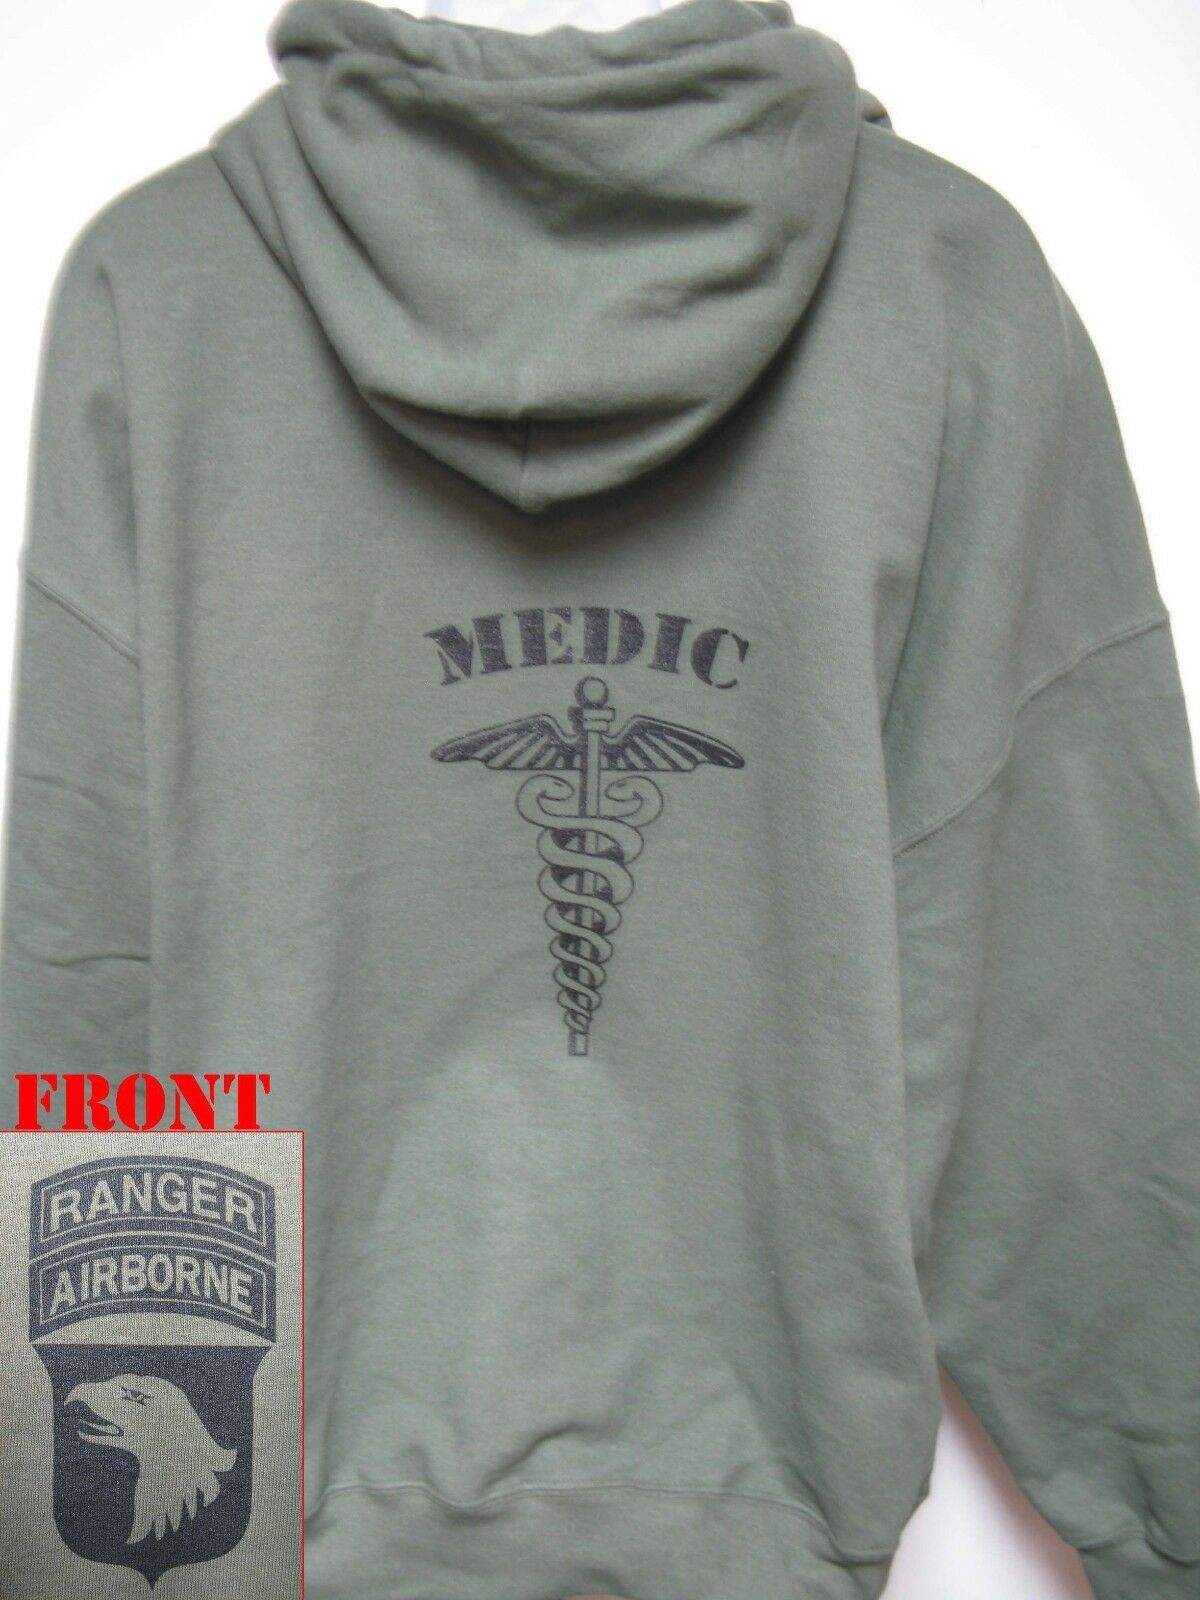 MEDIC HOODIE SWEATSHIRT  SWEAT TOP  OD GREEN  MILITARY  101 AIRBORNE RANGER  NEW